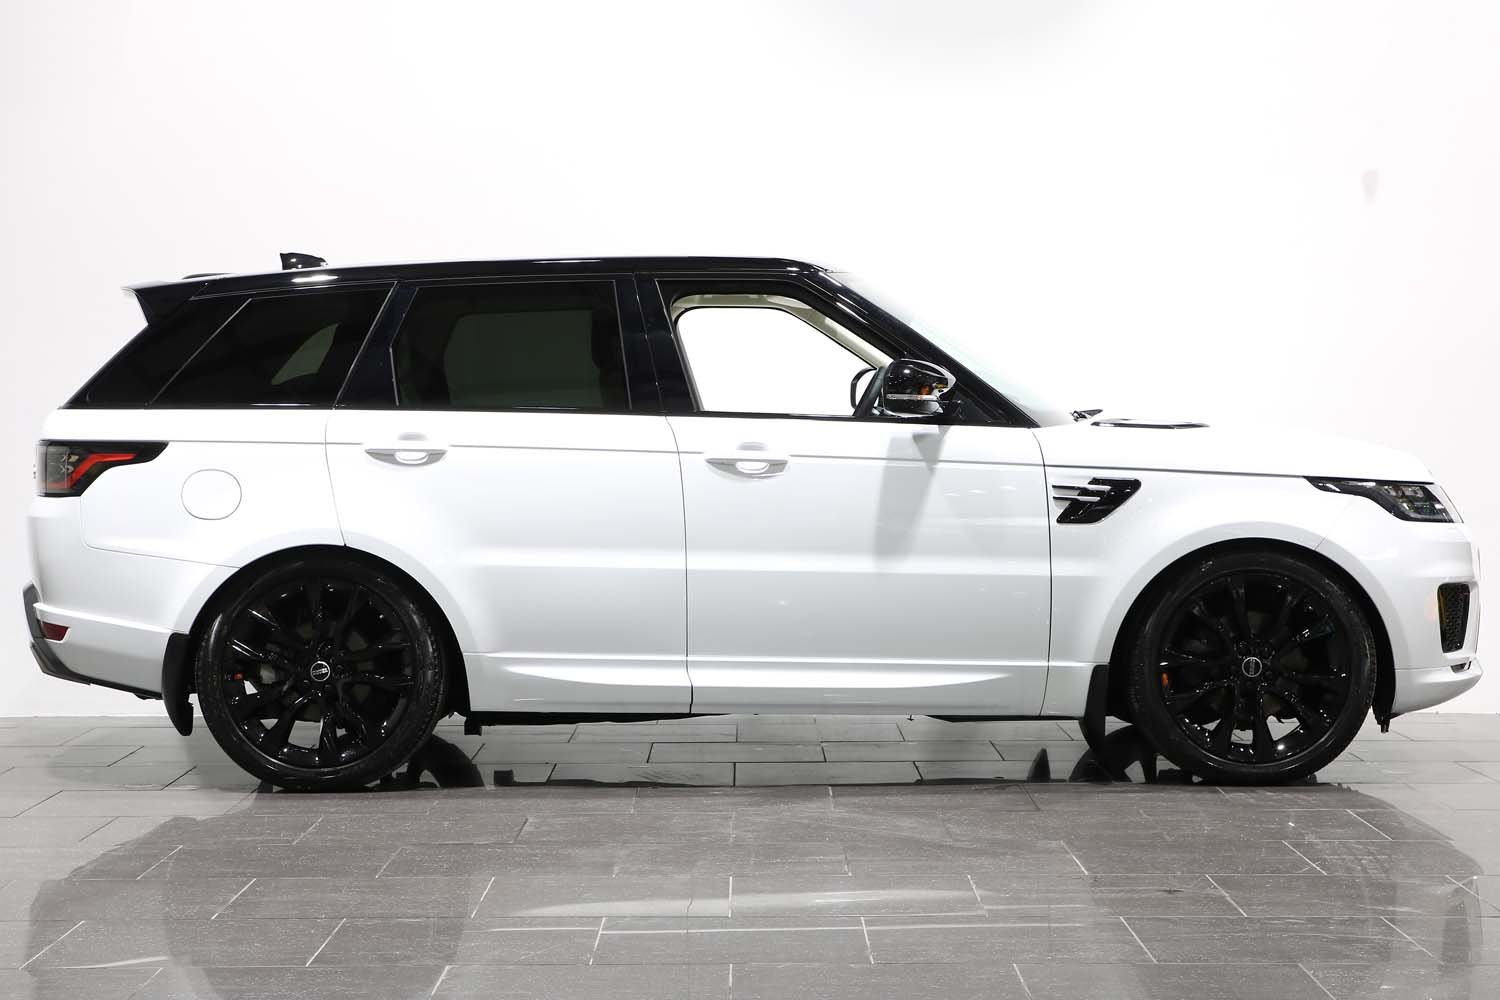 2018 68 RANGE ROVER SPORT 3.0 SDV8 HSE AUTO For Sale (picture 2 of 6)